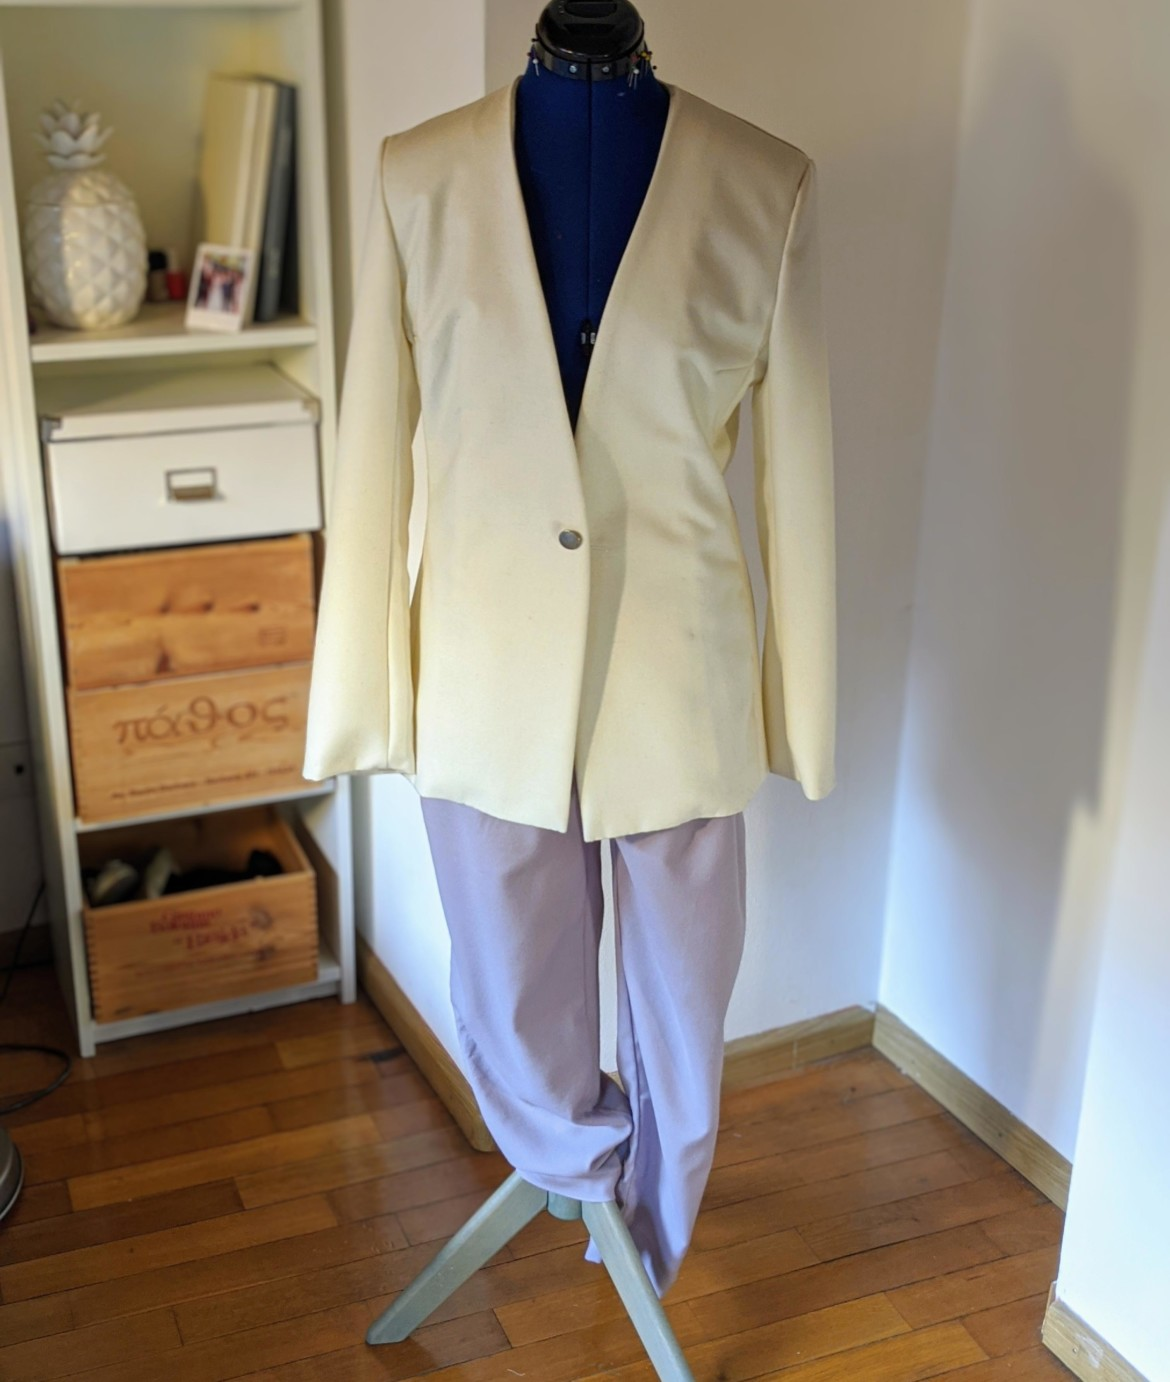 burda style Nutzerkreation fancy_juli Woll-Blazer ohne Revers